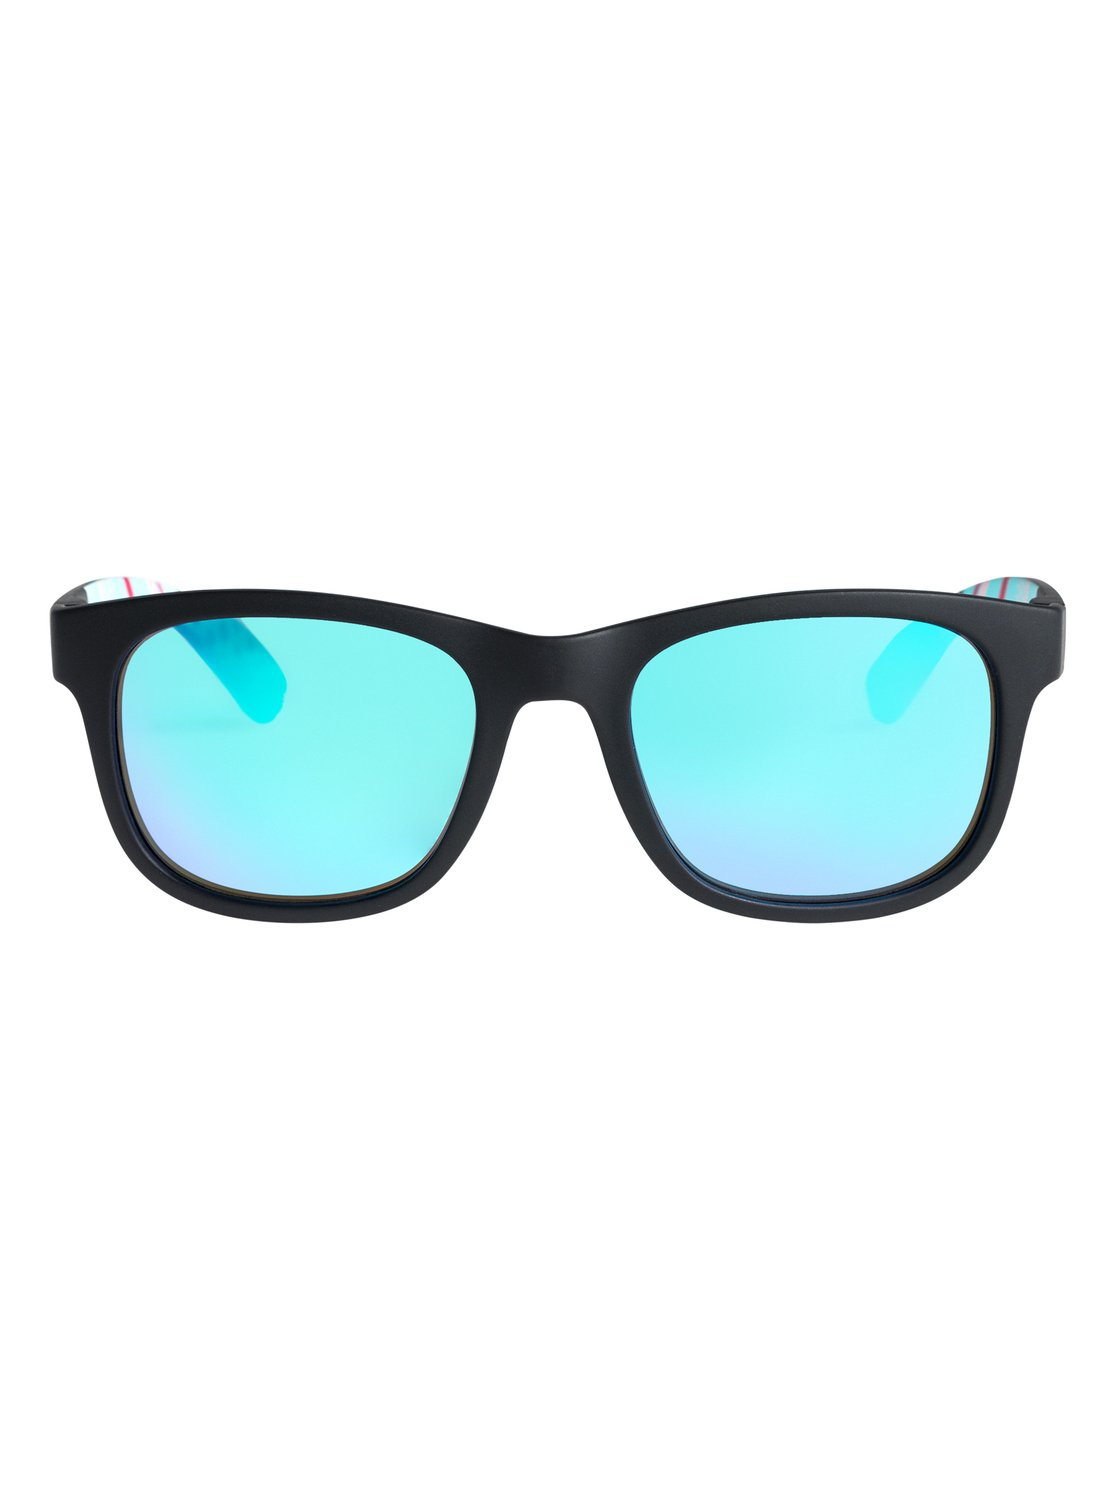 Roxy Sonnenbrille »Runaway«, rosa, black / turquo